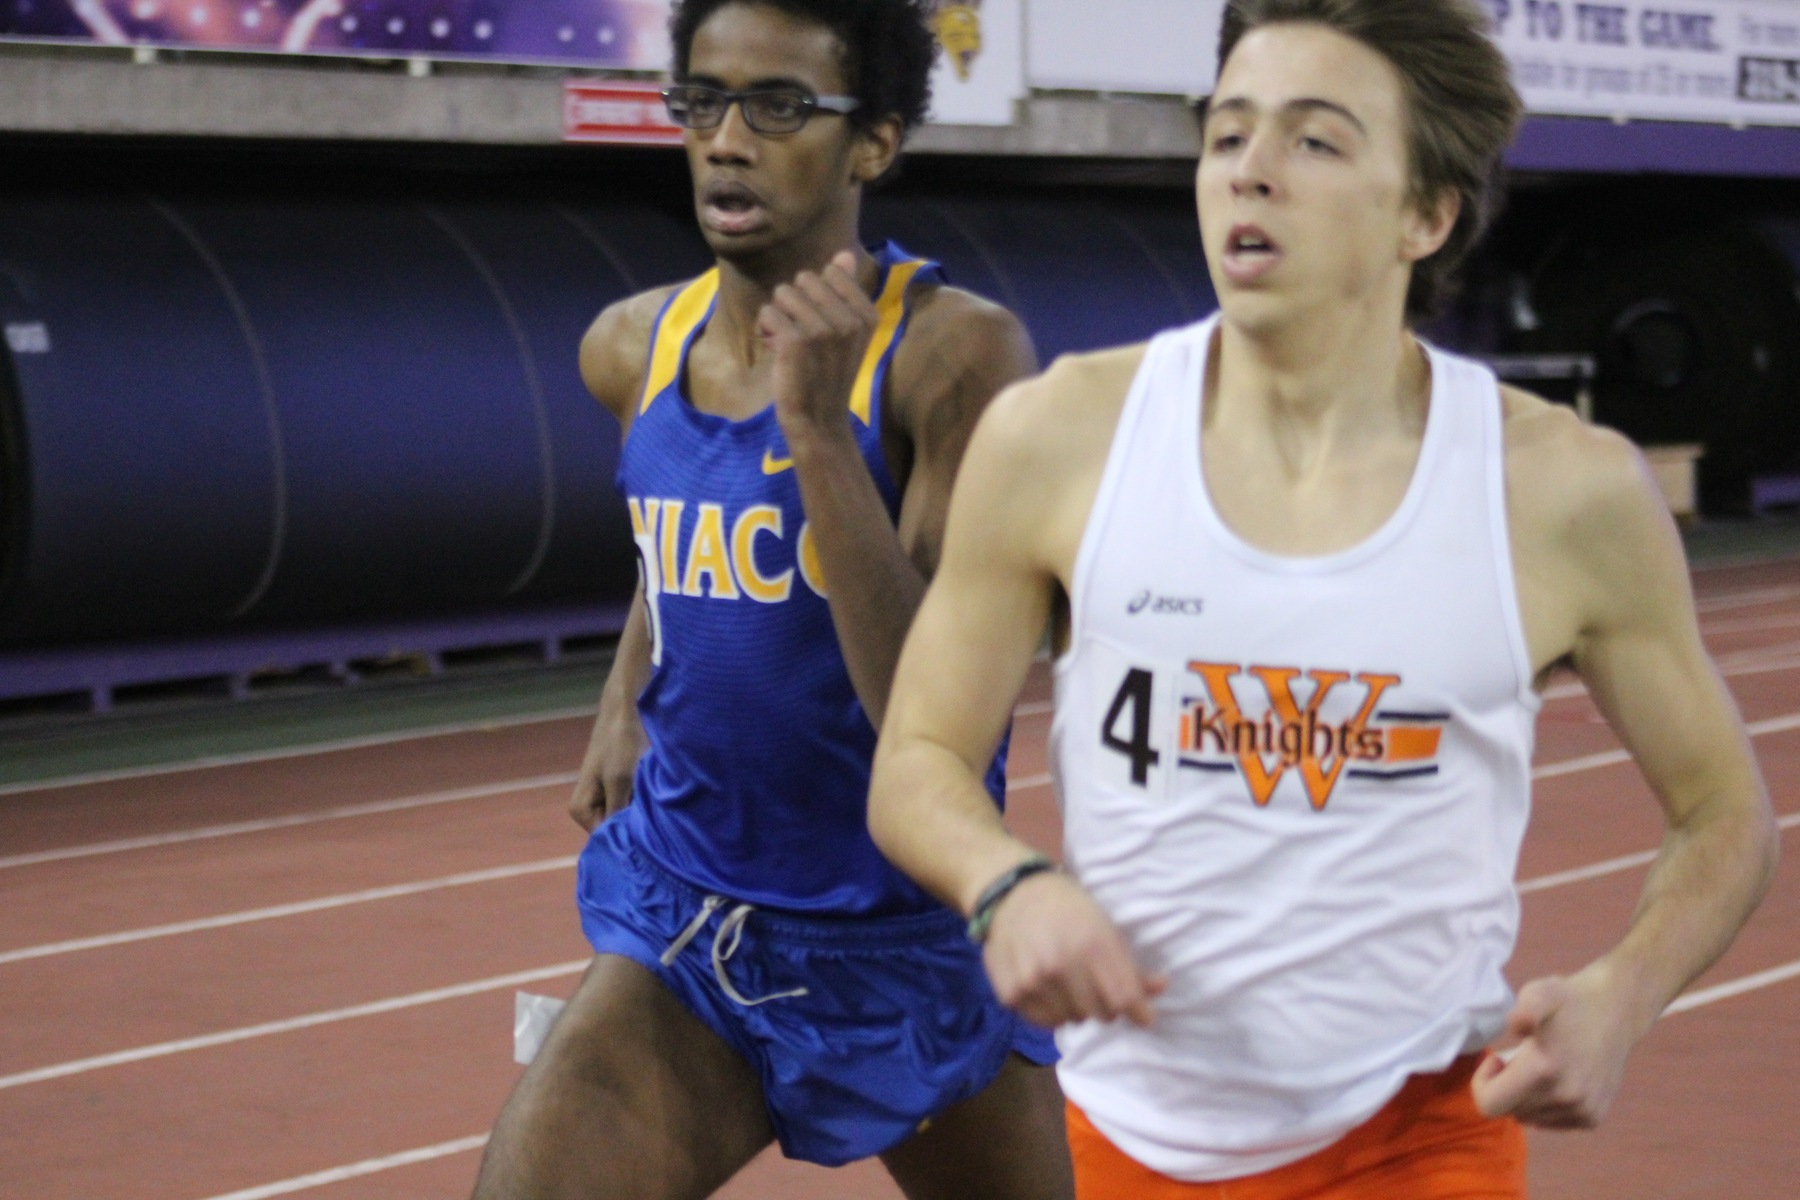 NIACC's Abiaziz Wako runs to a ninth-place finish at the Jack Jennett Open on Friday.